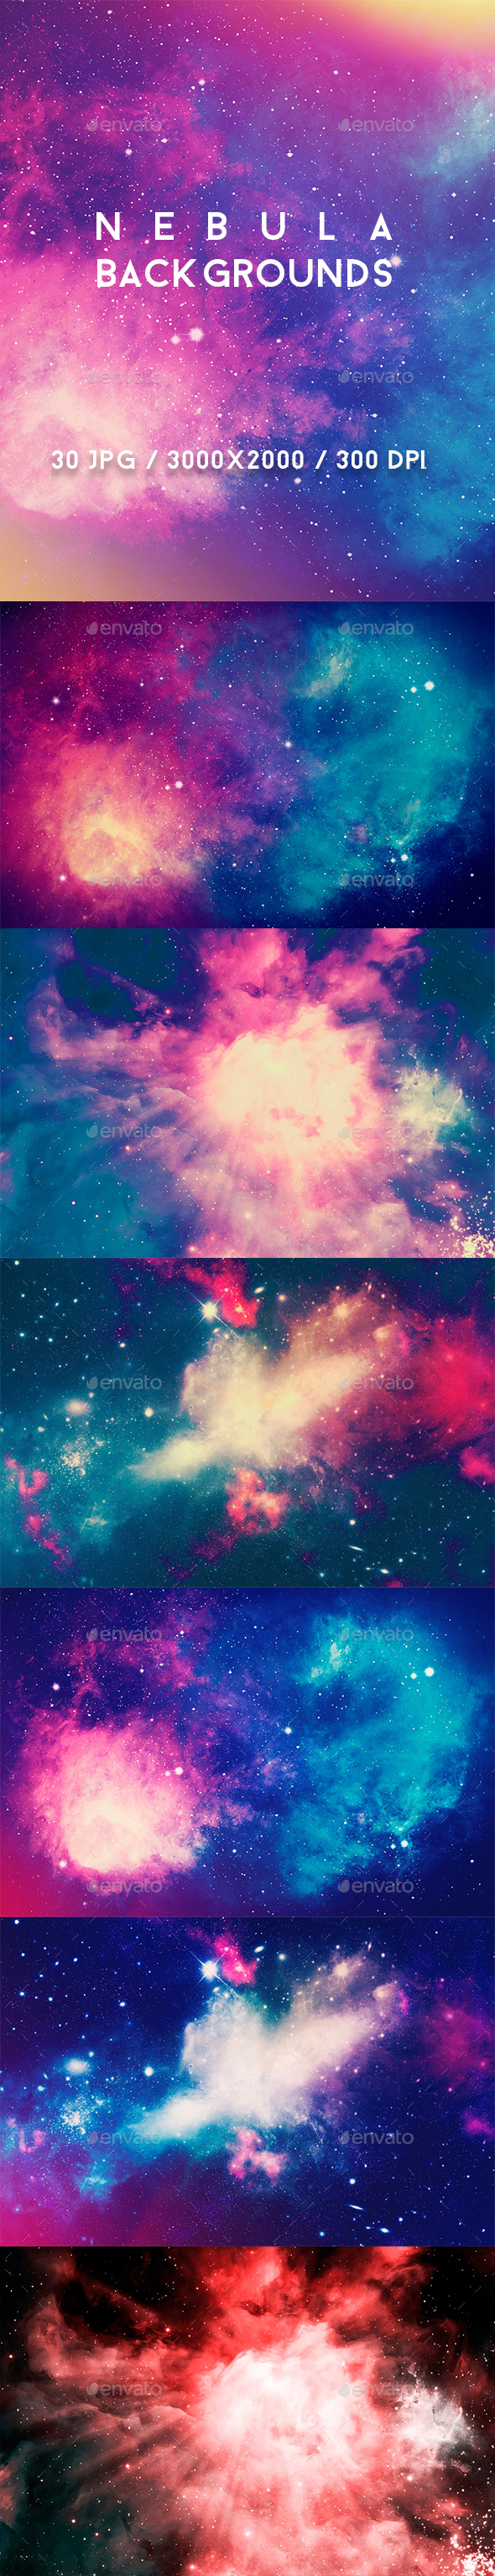 30 Nebula Backgrounds - Abstract Backgrounds